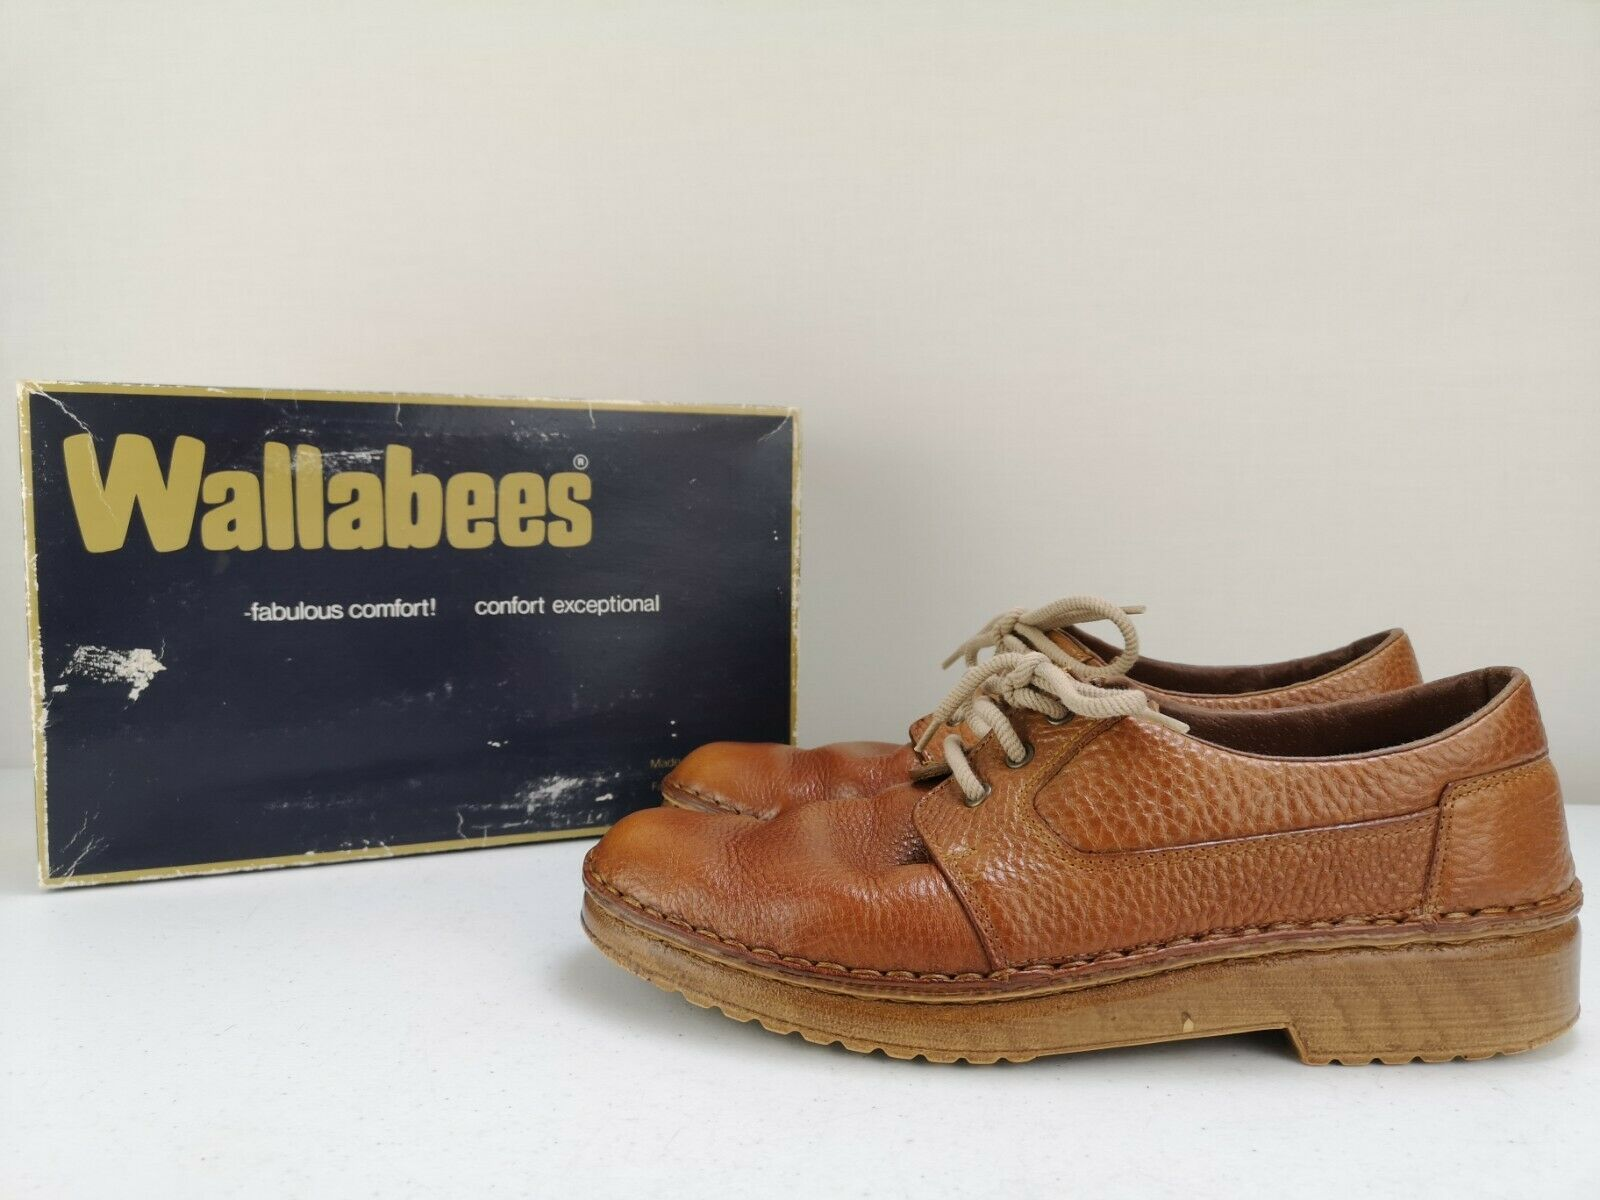 STITCHCRAFT WALLABEES Men Man Flat Casual Shoe Leather Trainer Slip On Size 8